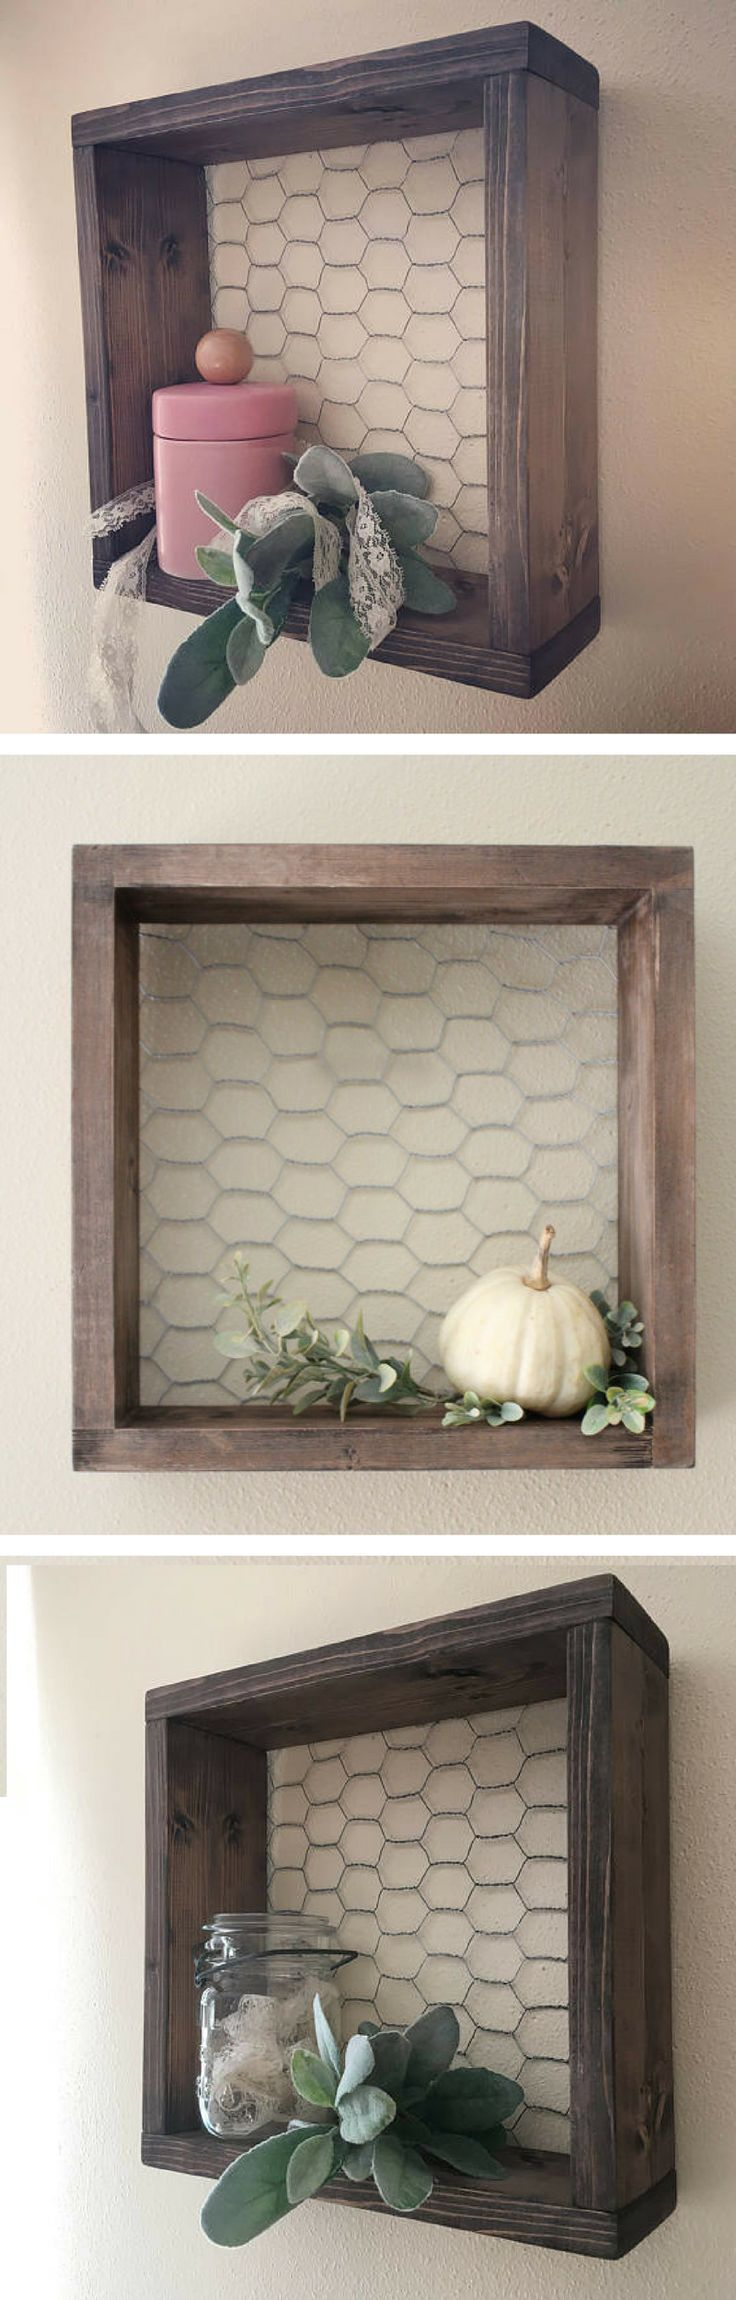 4166 best diy primitive crafts images on pinterest country perfect shelf to fit in with my rustic farmhouse decor chicken wire wood shelf solutioingenieria Image collections